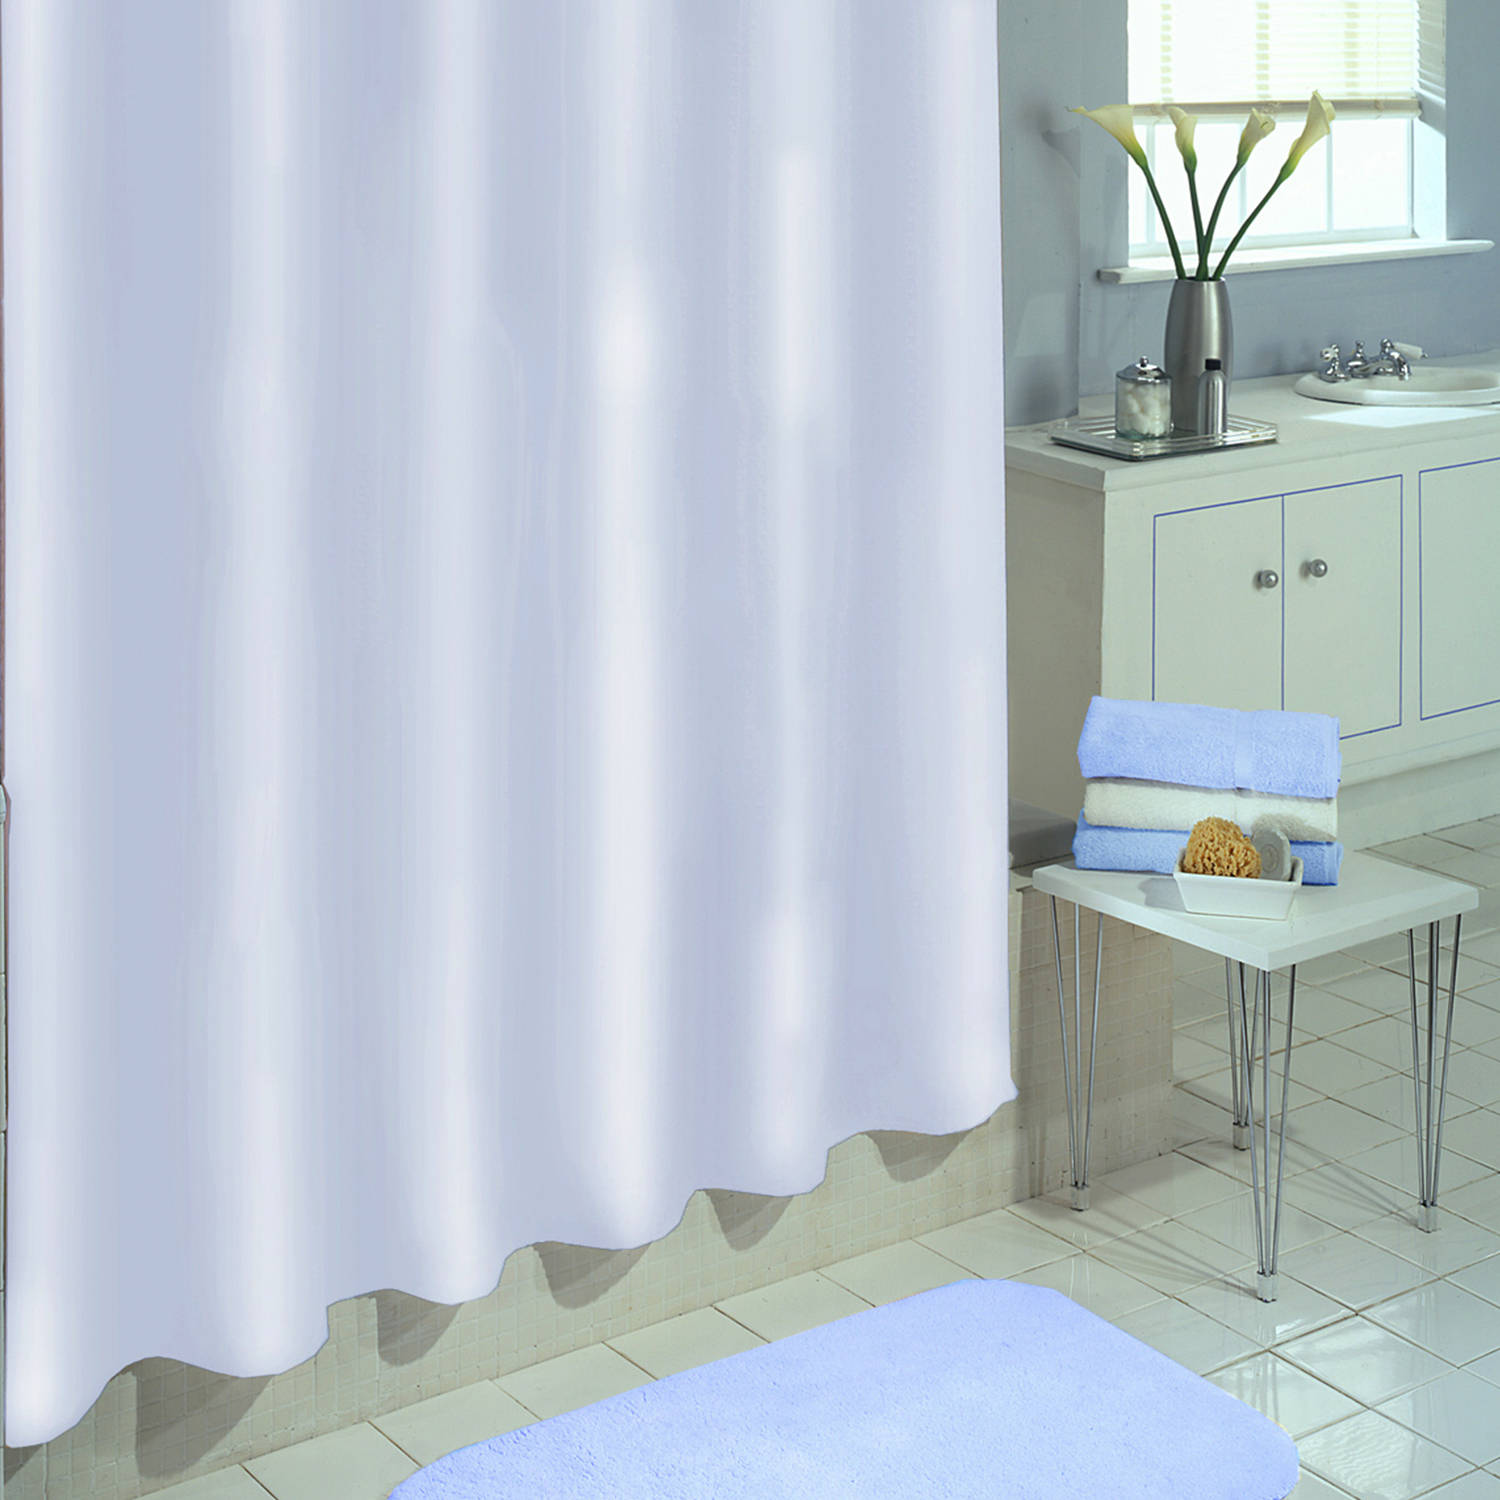 "Excell Medium-Weight Eco-Friendly 100 percent PEVA Shower Curtain Liner, Anti Mildew, 70"" x 72"", White"